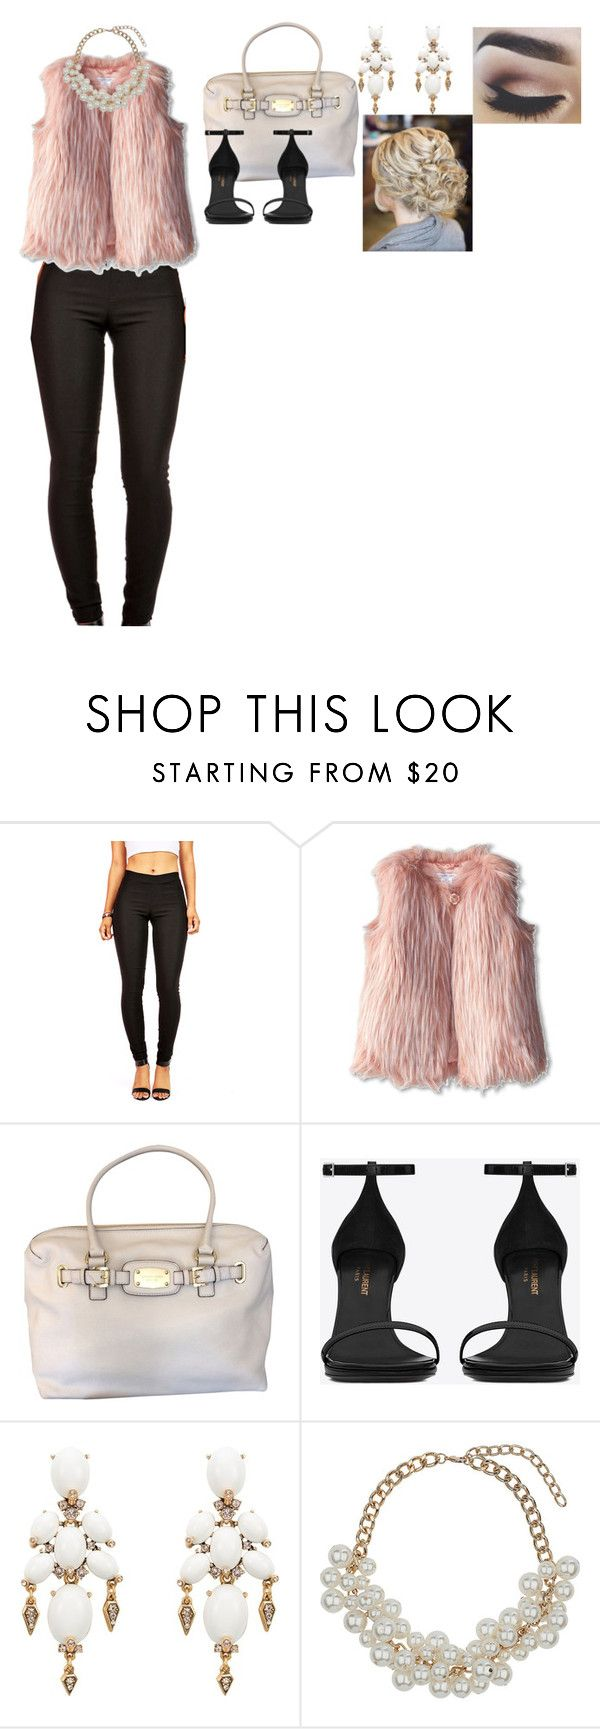 """Untitled #239"" by kenzie-riah ❤ liked on Polyvore featuring Little Marc Jacobs, Michael Kors, Yves Saint Laurent, Oscar de la Renta and Miss Selfridge"